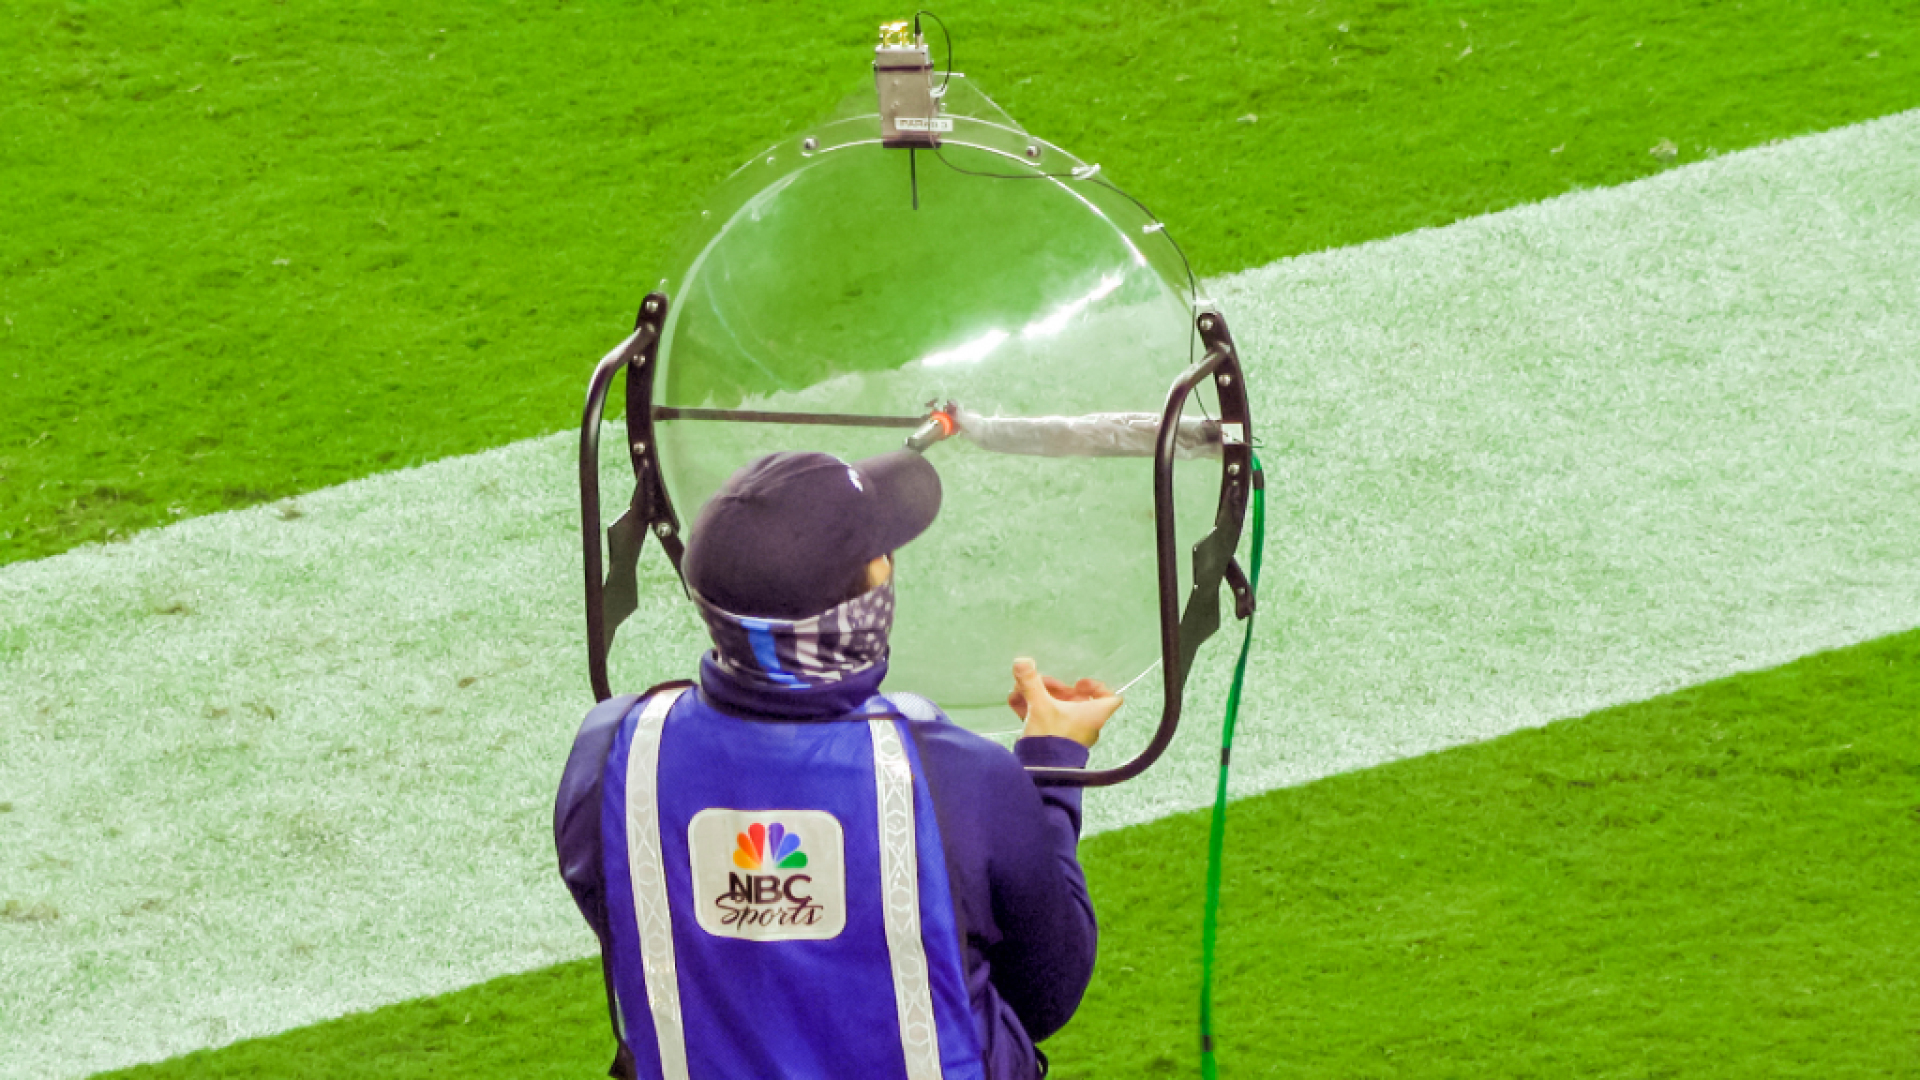 A man in an NBC Sports vest holds a large clear dish-shaped microphone